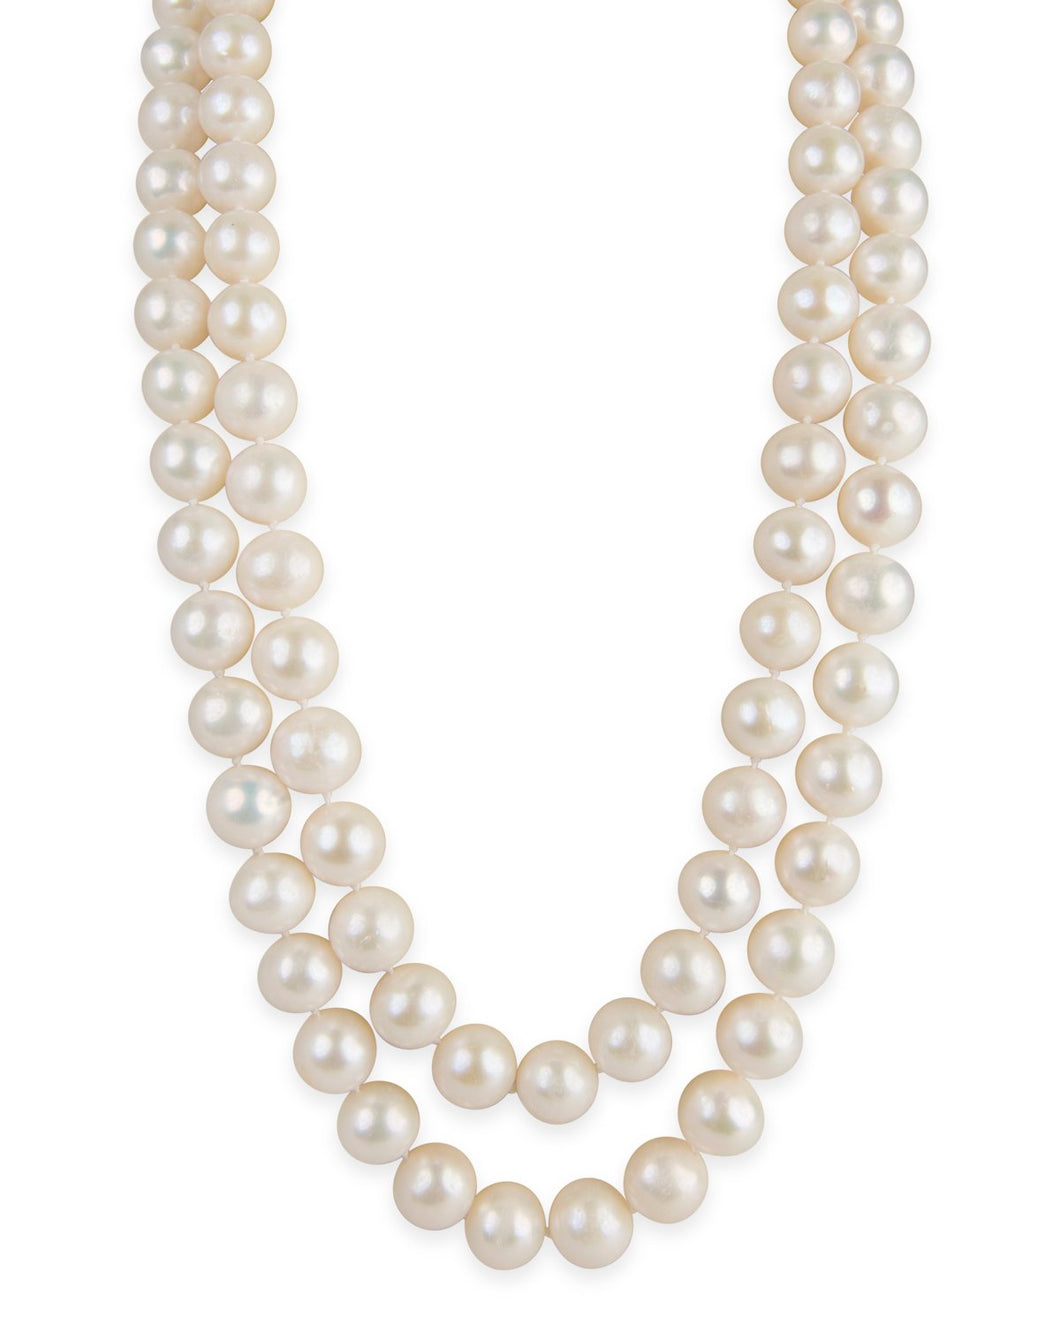 Double Strand White Knotted Pearl Necklace